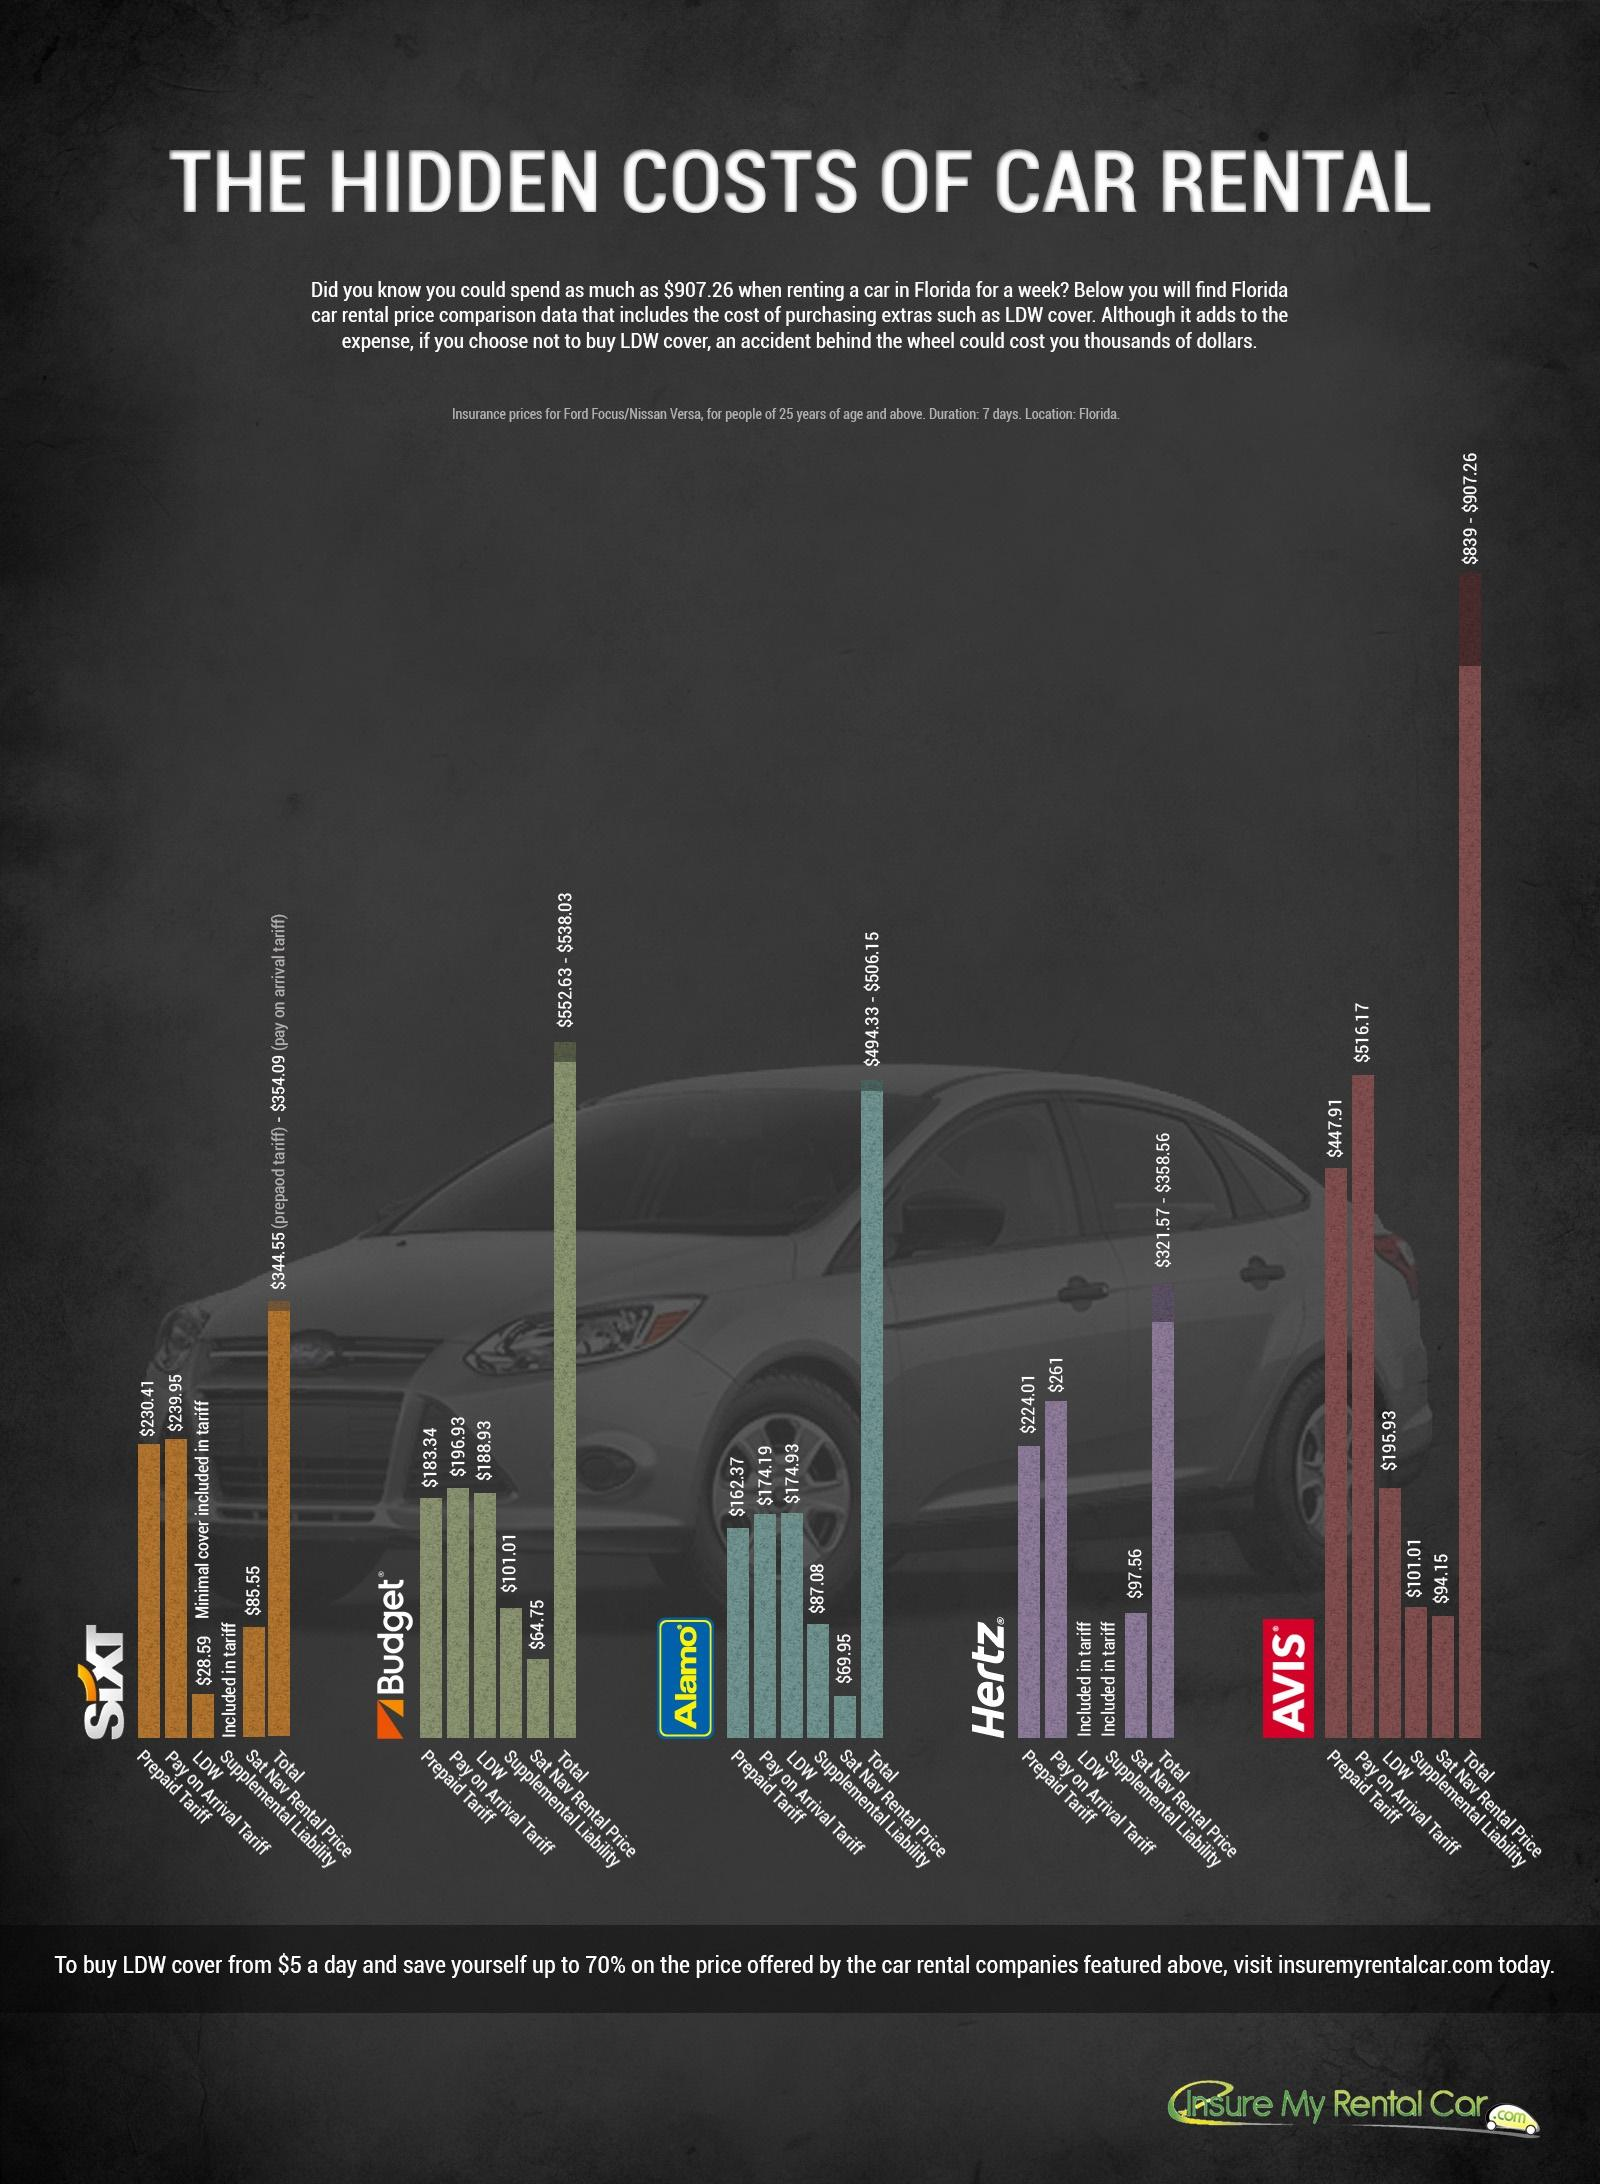 Hidden car rental costs infographic